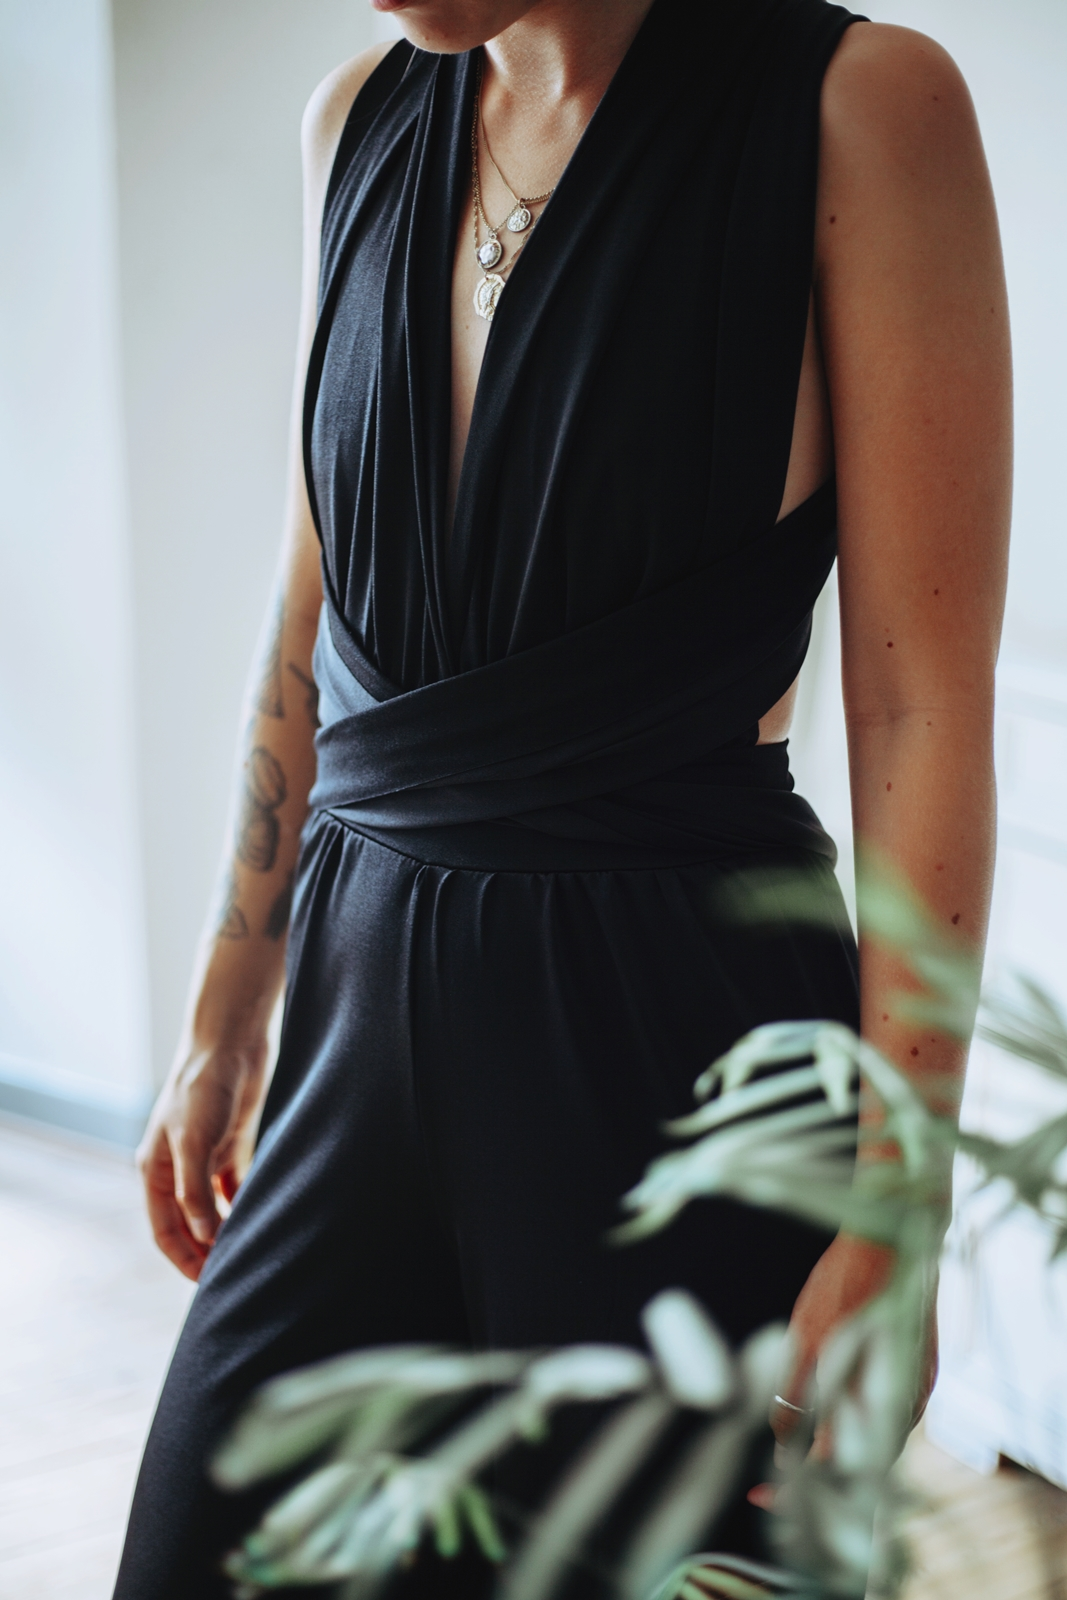 Dressed up for party in a black slinky multiway jumpsuit from femme luxe finery.